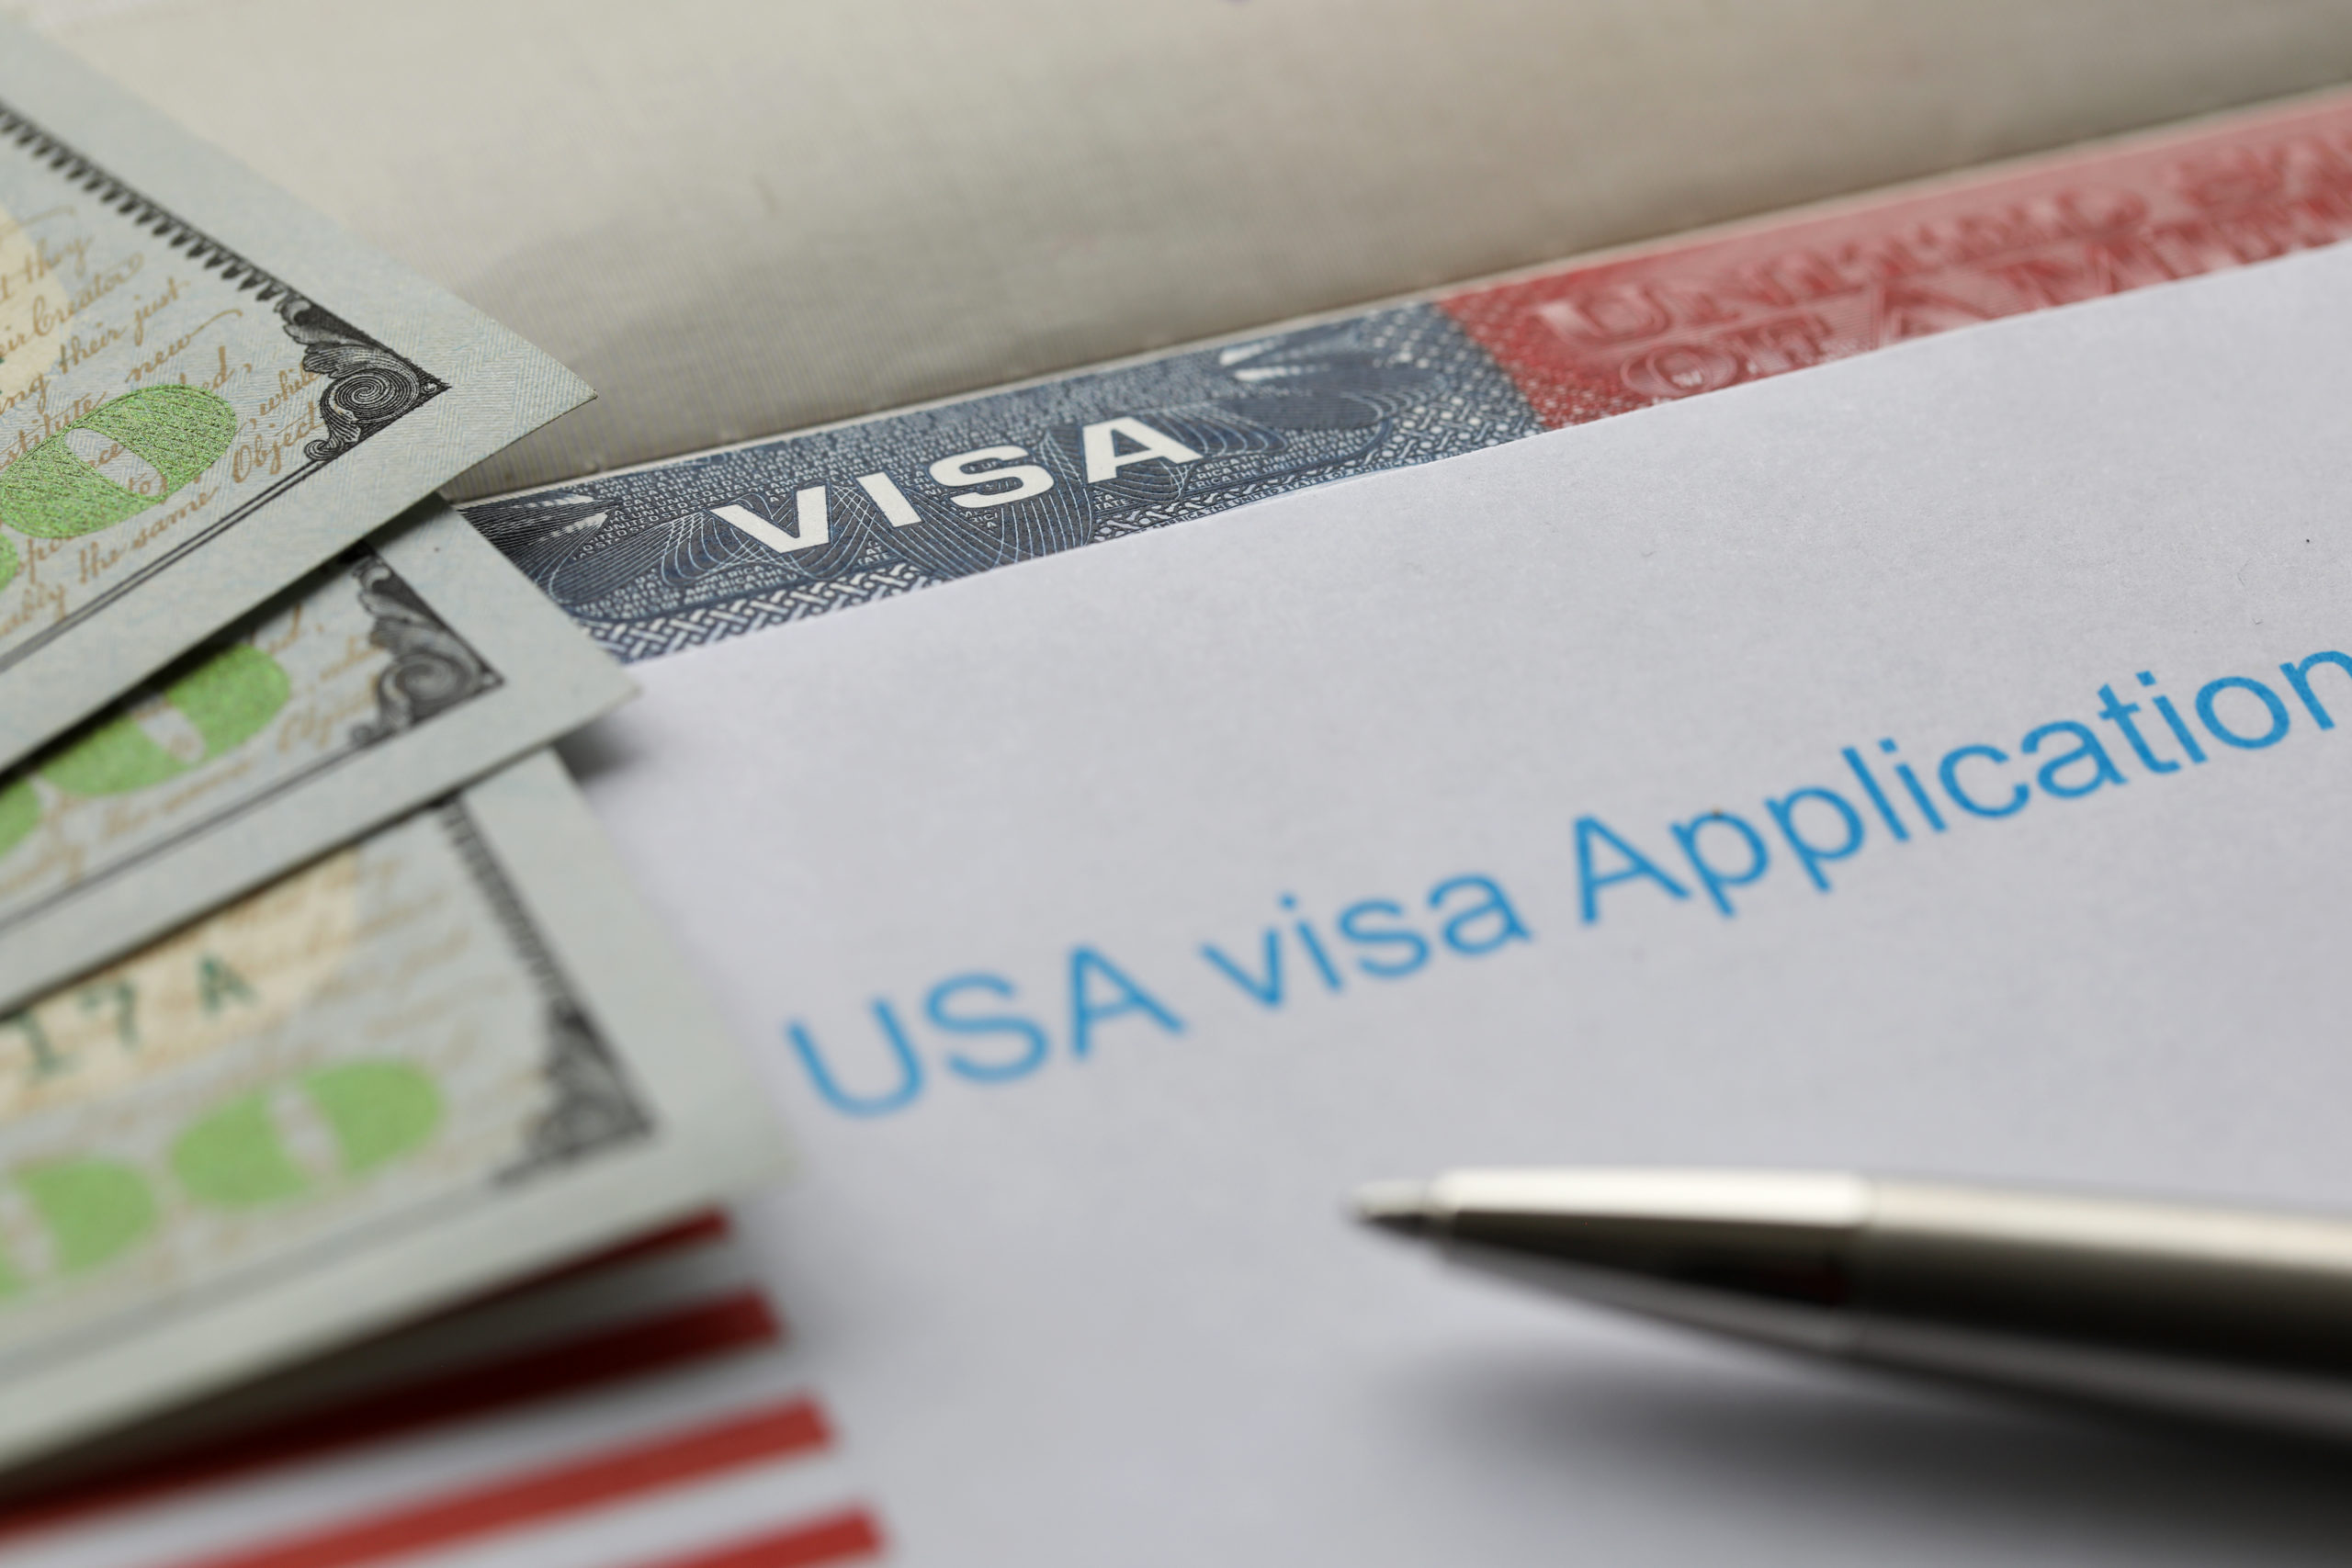 A U.S. visa application and money.